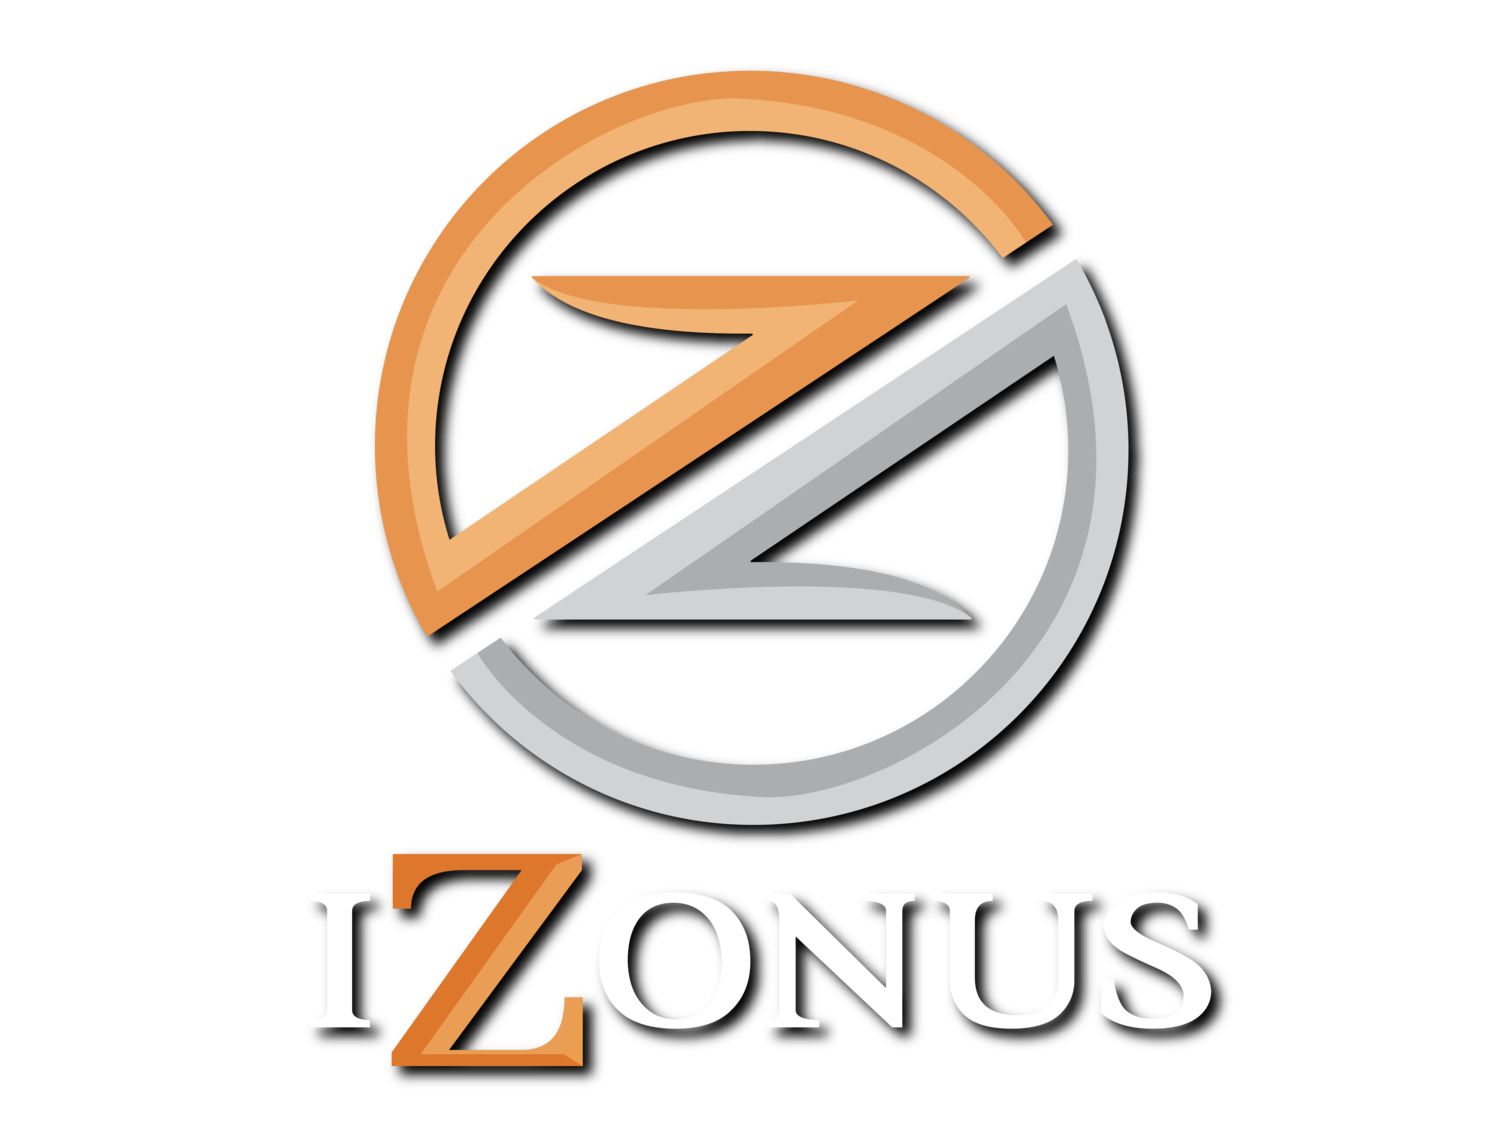 iZonus - A Tool, Not a Toy